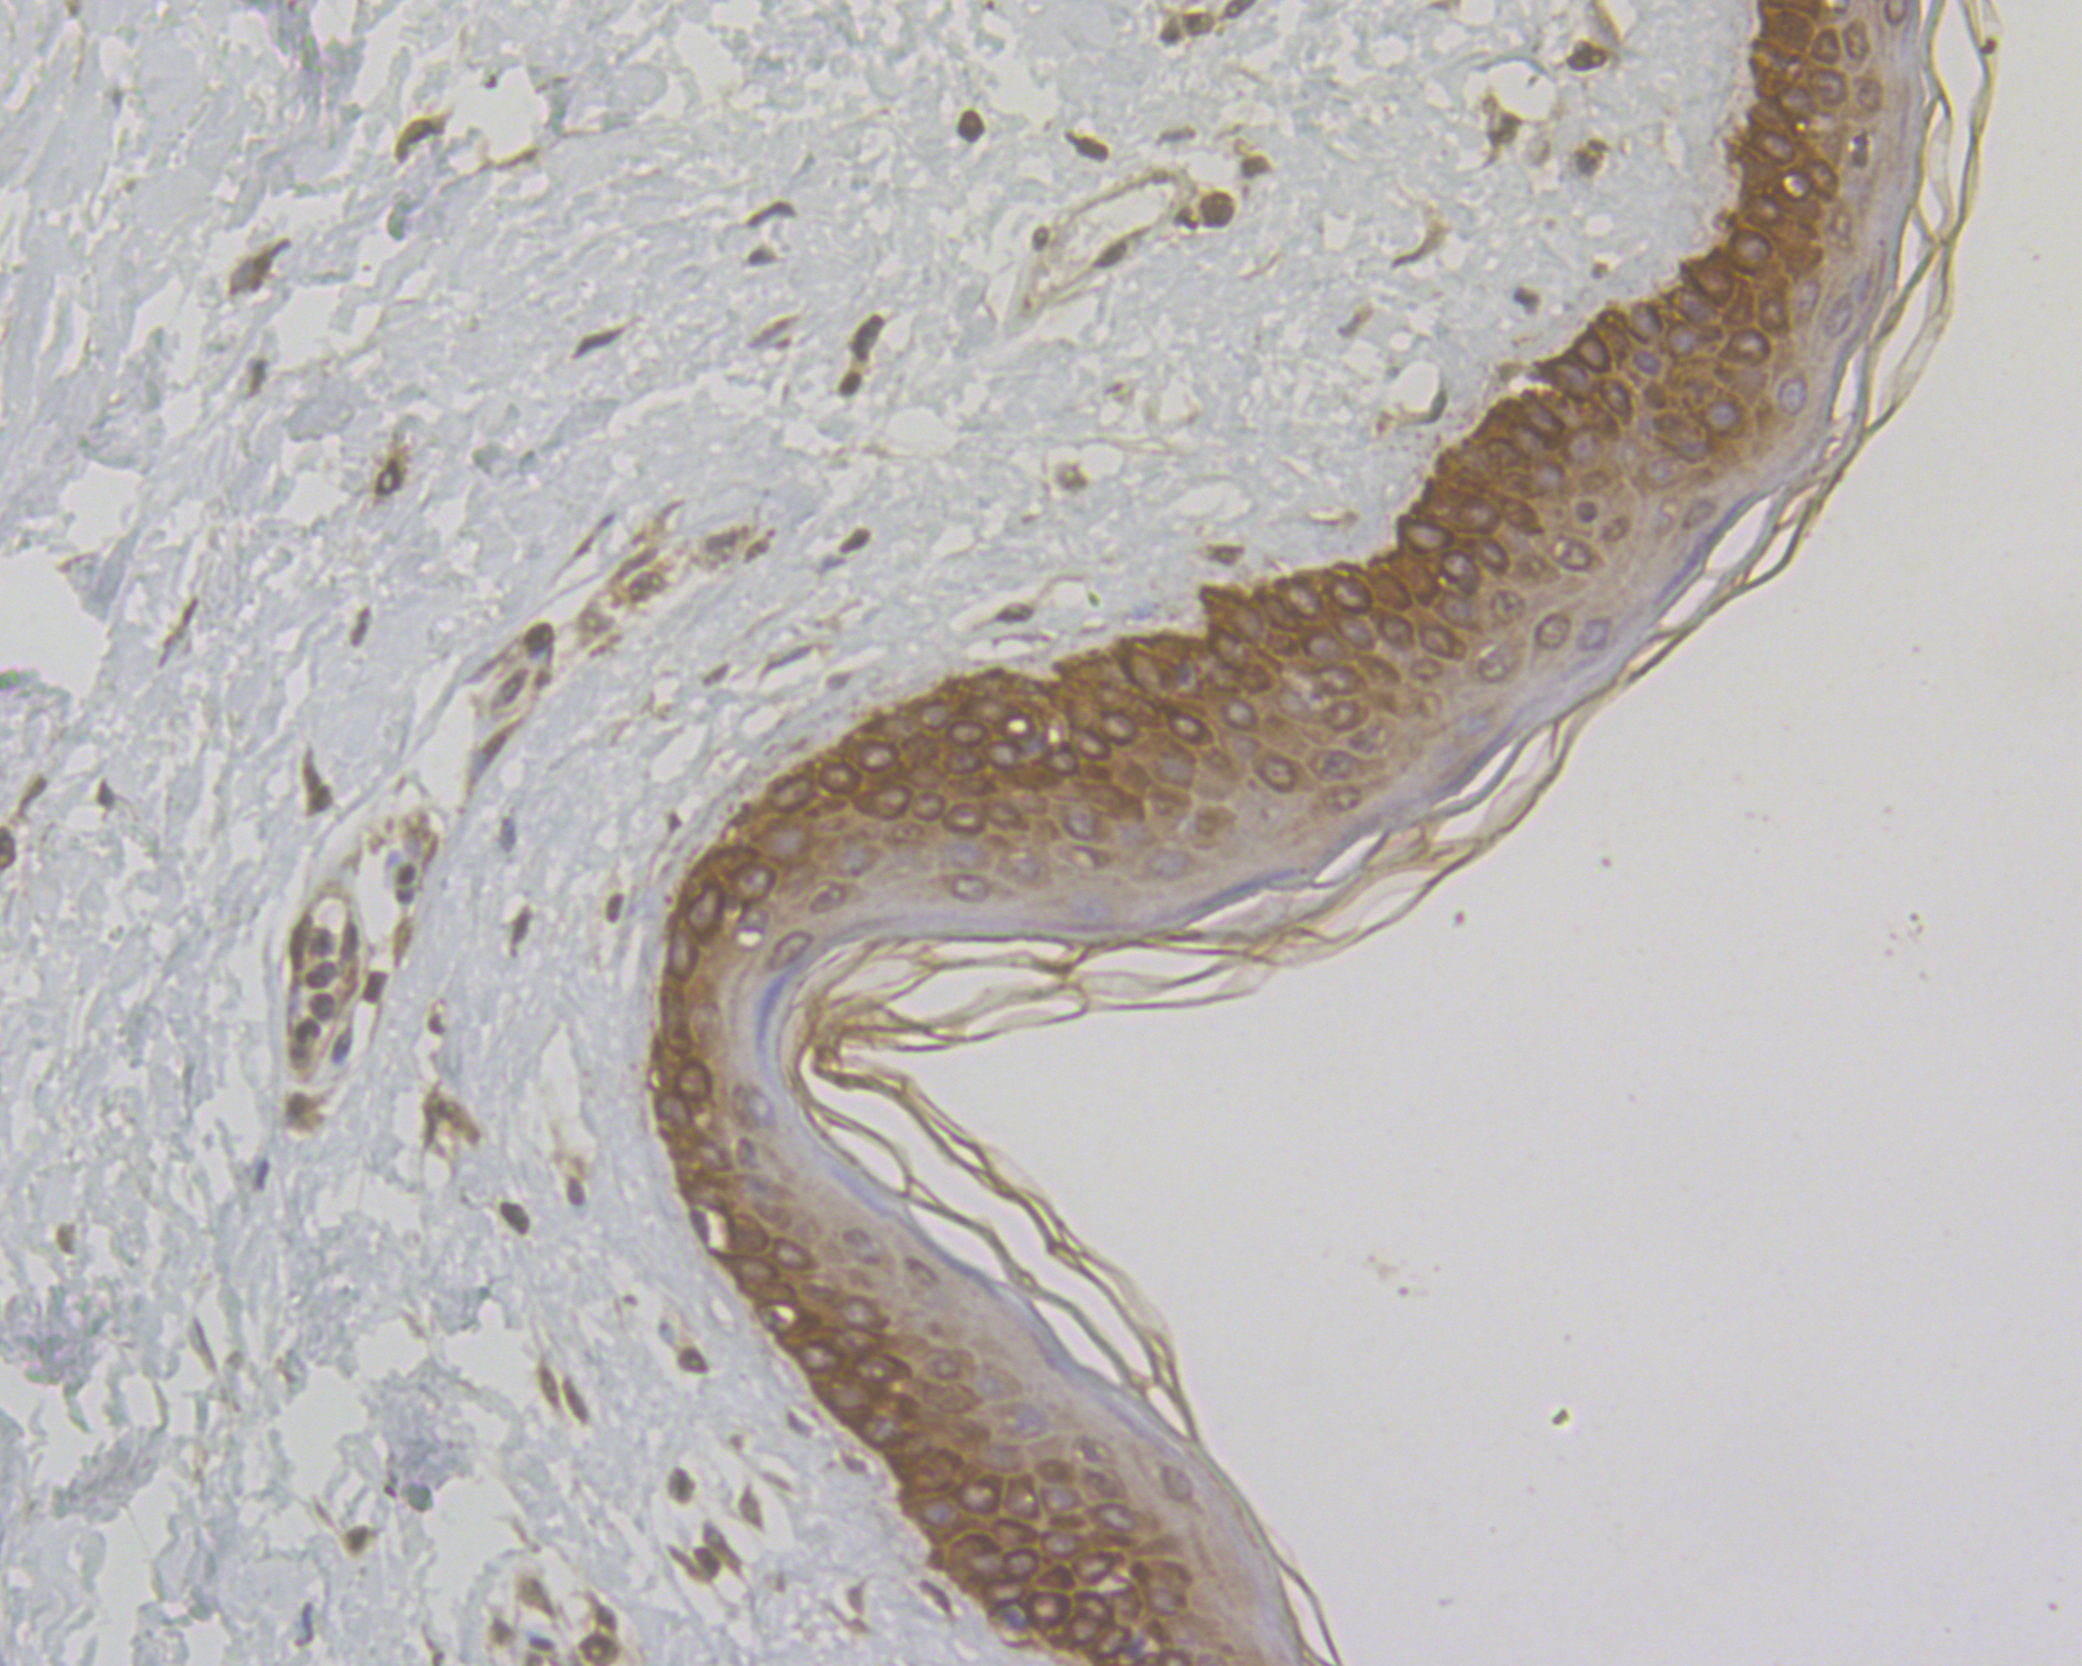 Immunohistochemical analysis of paraffin-embedded human skin tissue using anti-Cytokeratin 5+6 antibody. The section was pre-treated using heat mediated antigen retrieval with sodium citrate buffer (pH 6.0) for 20 minutes. The tissues were blocked in 5% BSA for 30 minutes at room temperature, washed with ddH2O and PBS, and then probed with the antibody (ER1901-86) at 1/50 dilution, for 30 minutes at room temperature and detected using an HRP conjugated compact polymer system. DAB was used as the chromogen. Counter stained with hematoxylin and mounted with DPX.